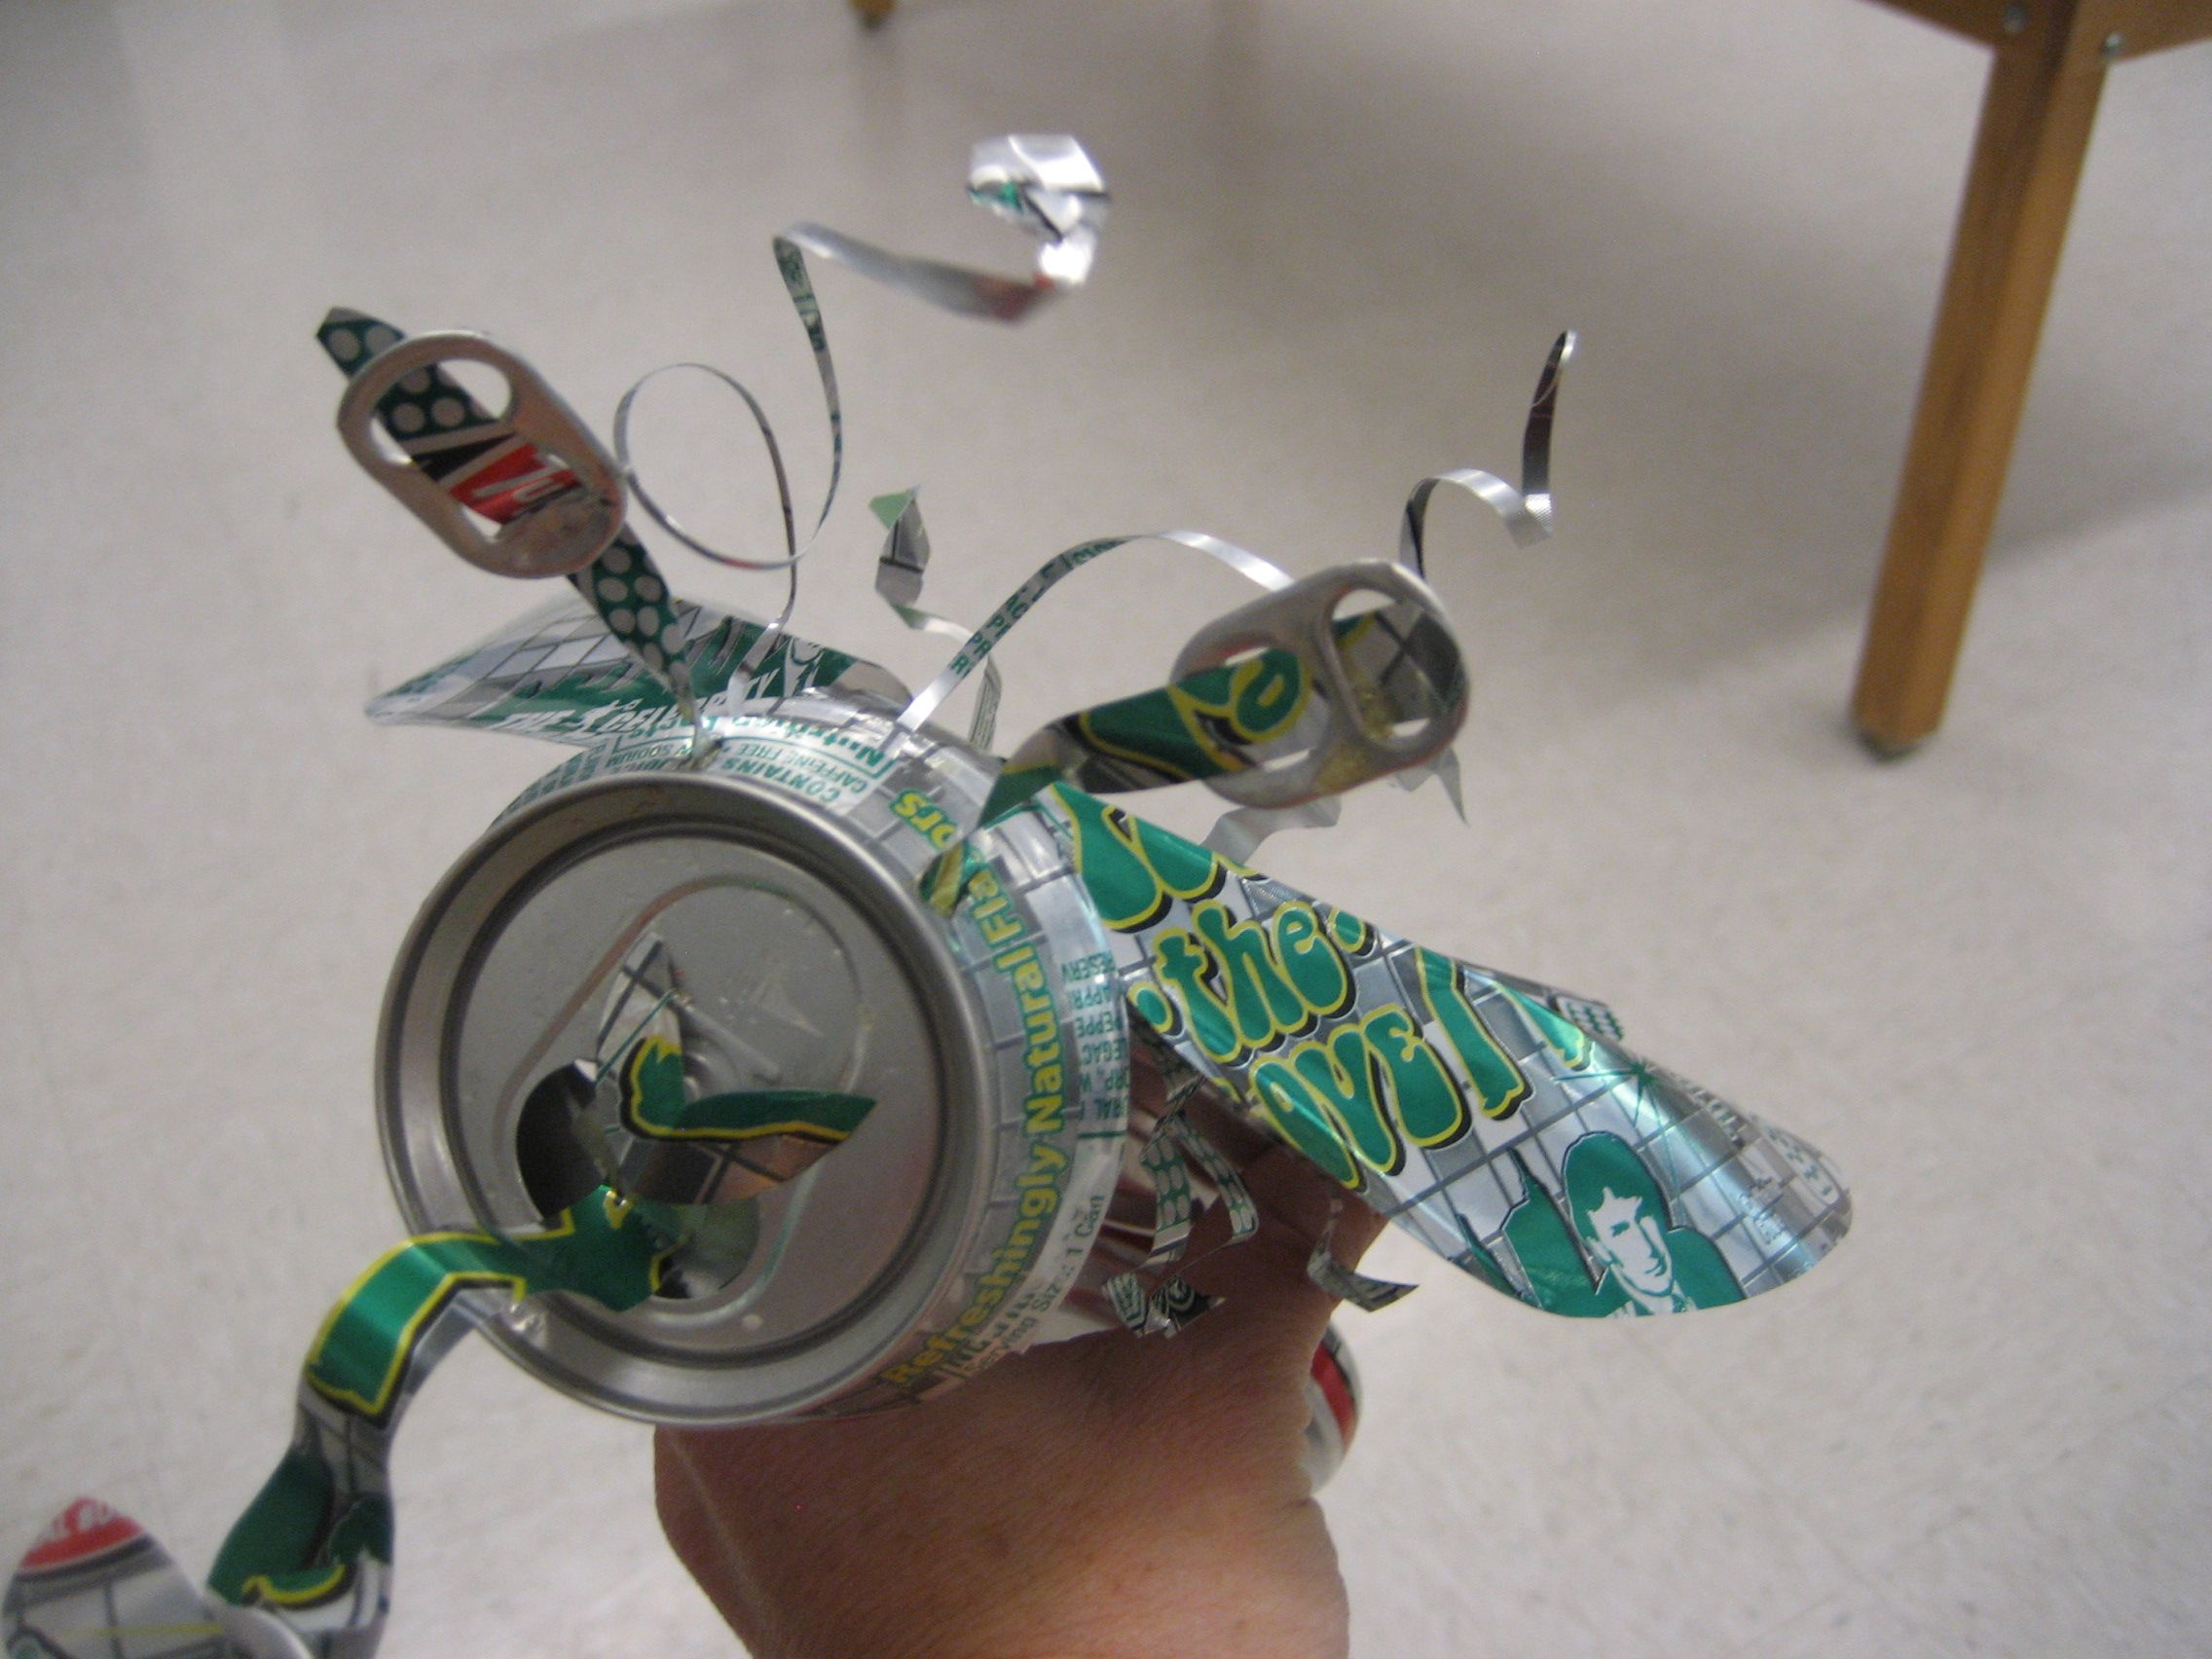 Soda can insect recycle art project middle school how for Investigatory project recyclable materials